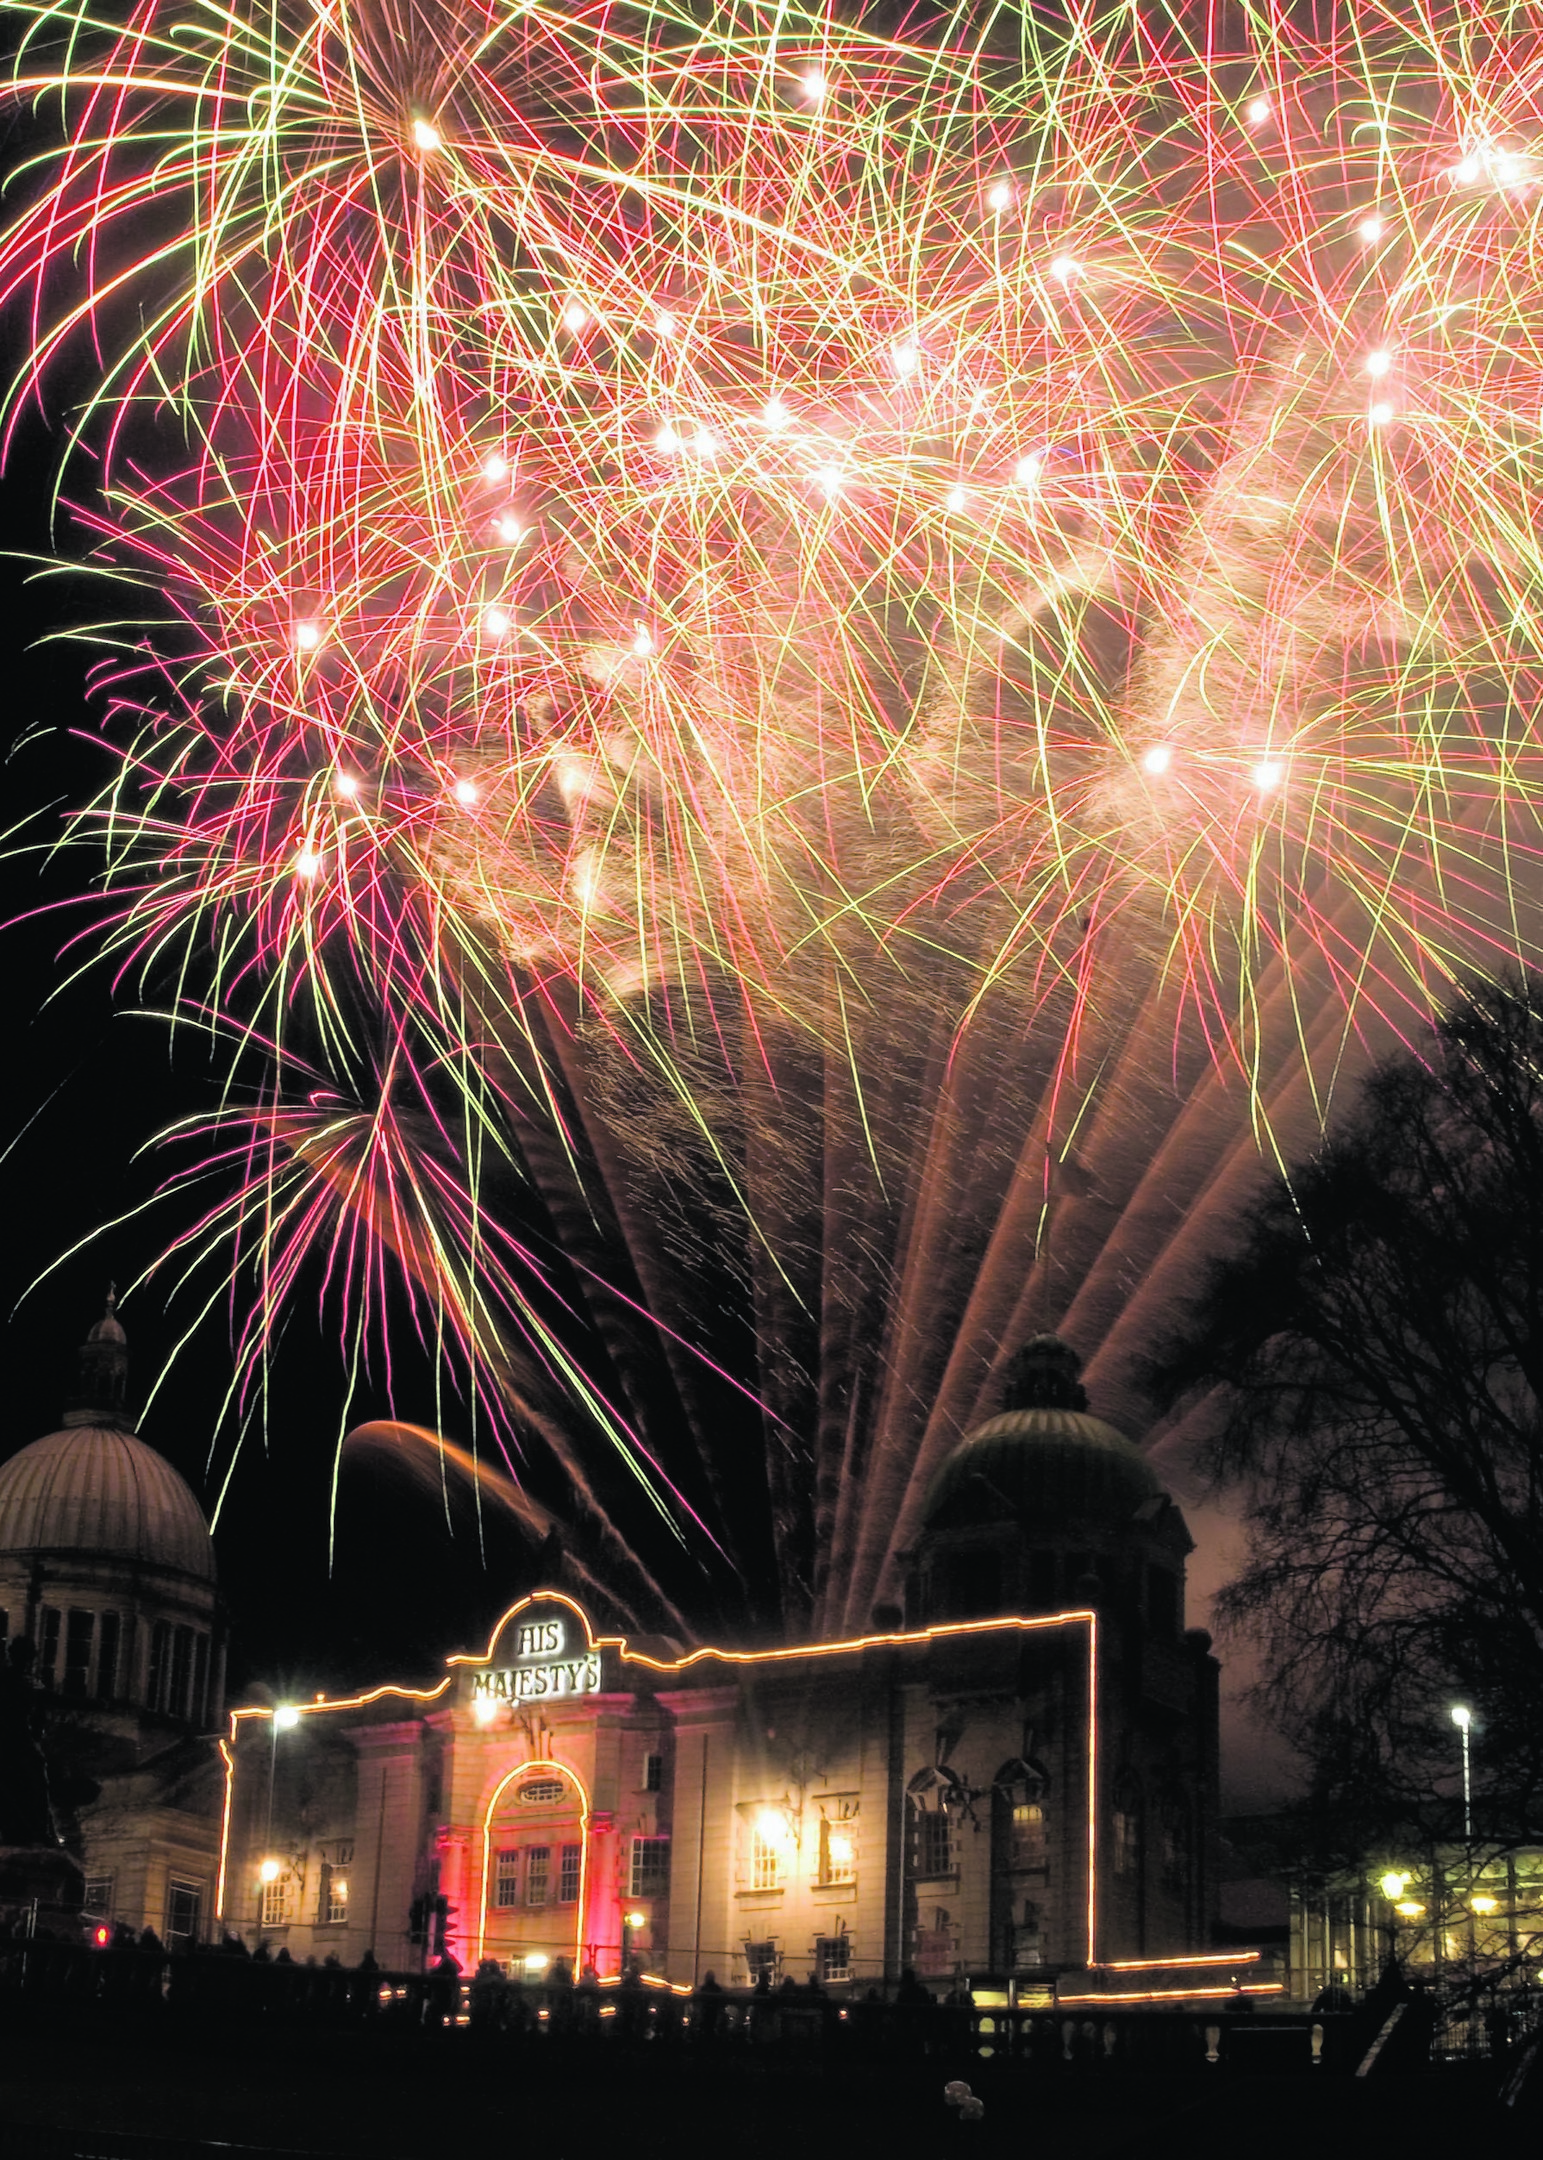 A fireworks display will light the sky over His Majesty's Theatre in Aberdeen